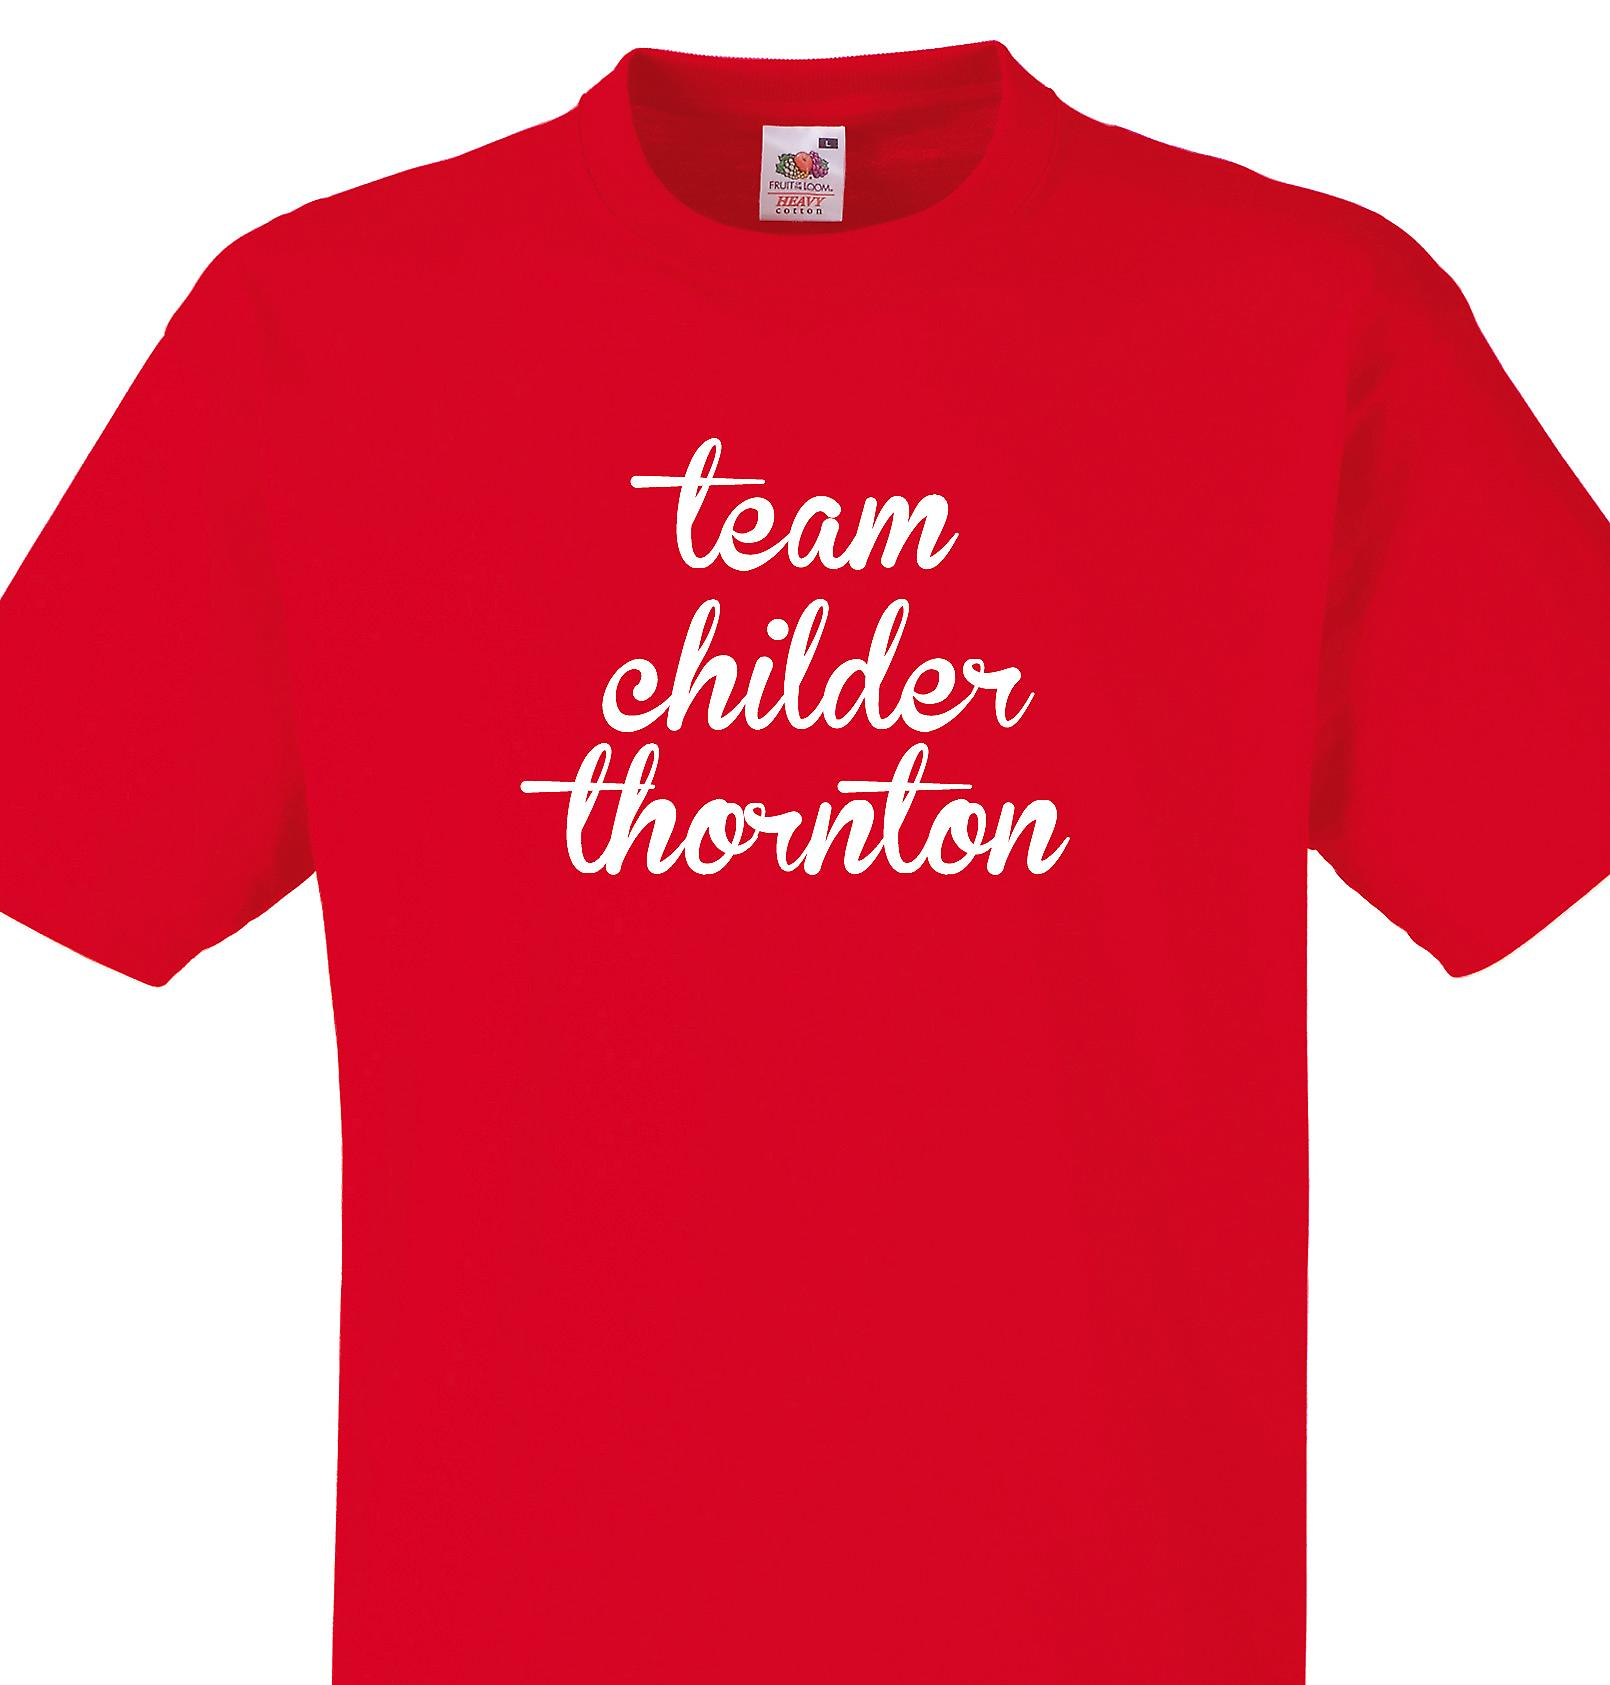 Team Childer thornton Red T shirt